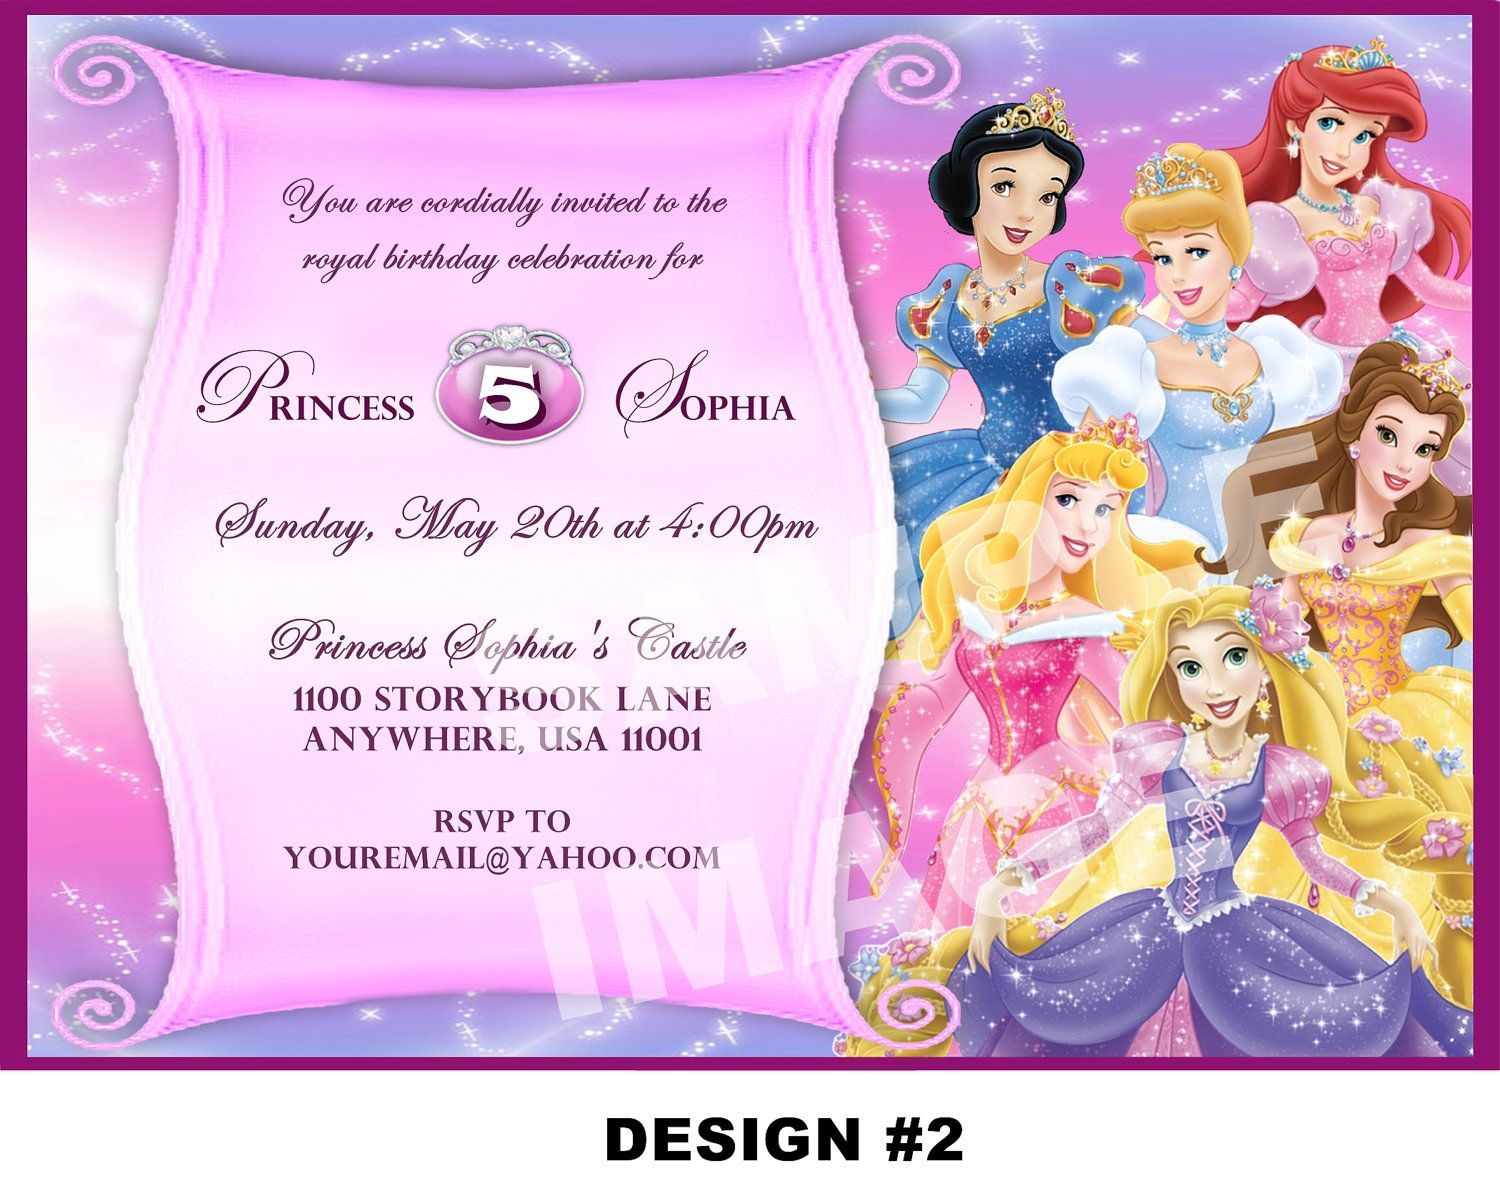 Cute 1 Year Experience Resume In Java J2ee Tall 10 Minute Resume Builder Solid 15 Year Old Resume Example 1920s Newspaper Template Young 2 Page Resume Too Long Fresh2014 June Calendar Template Disney Princess Birthday Invitation Card Maker Free | Baby Shower ..